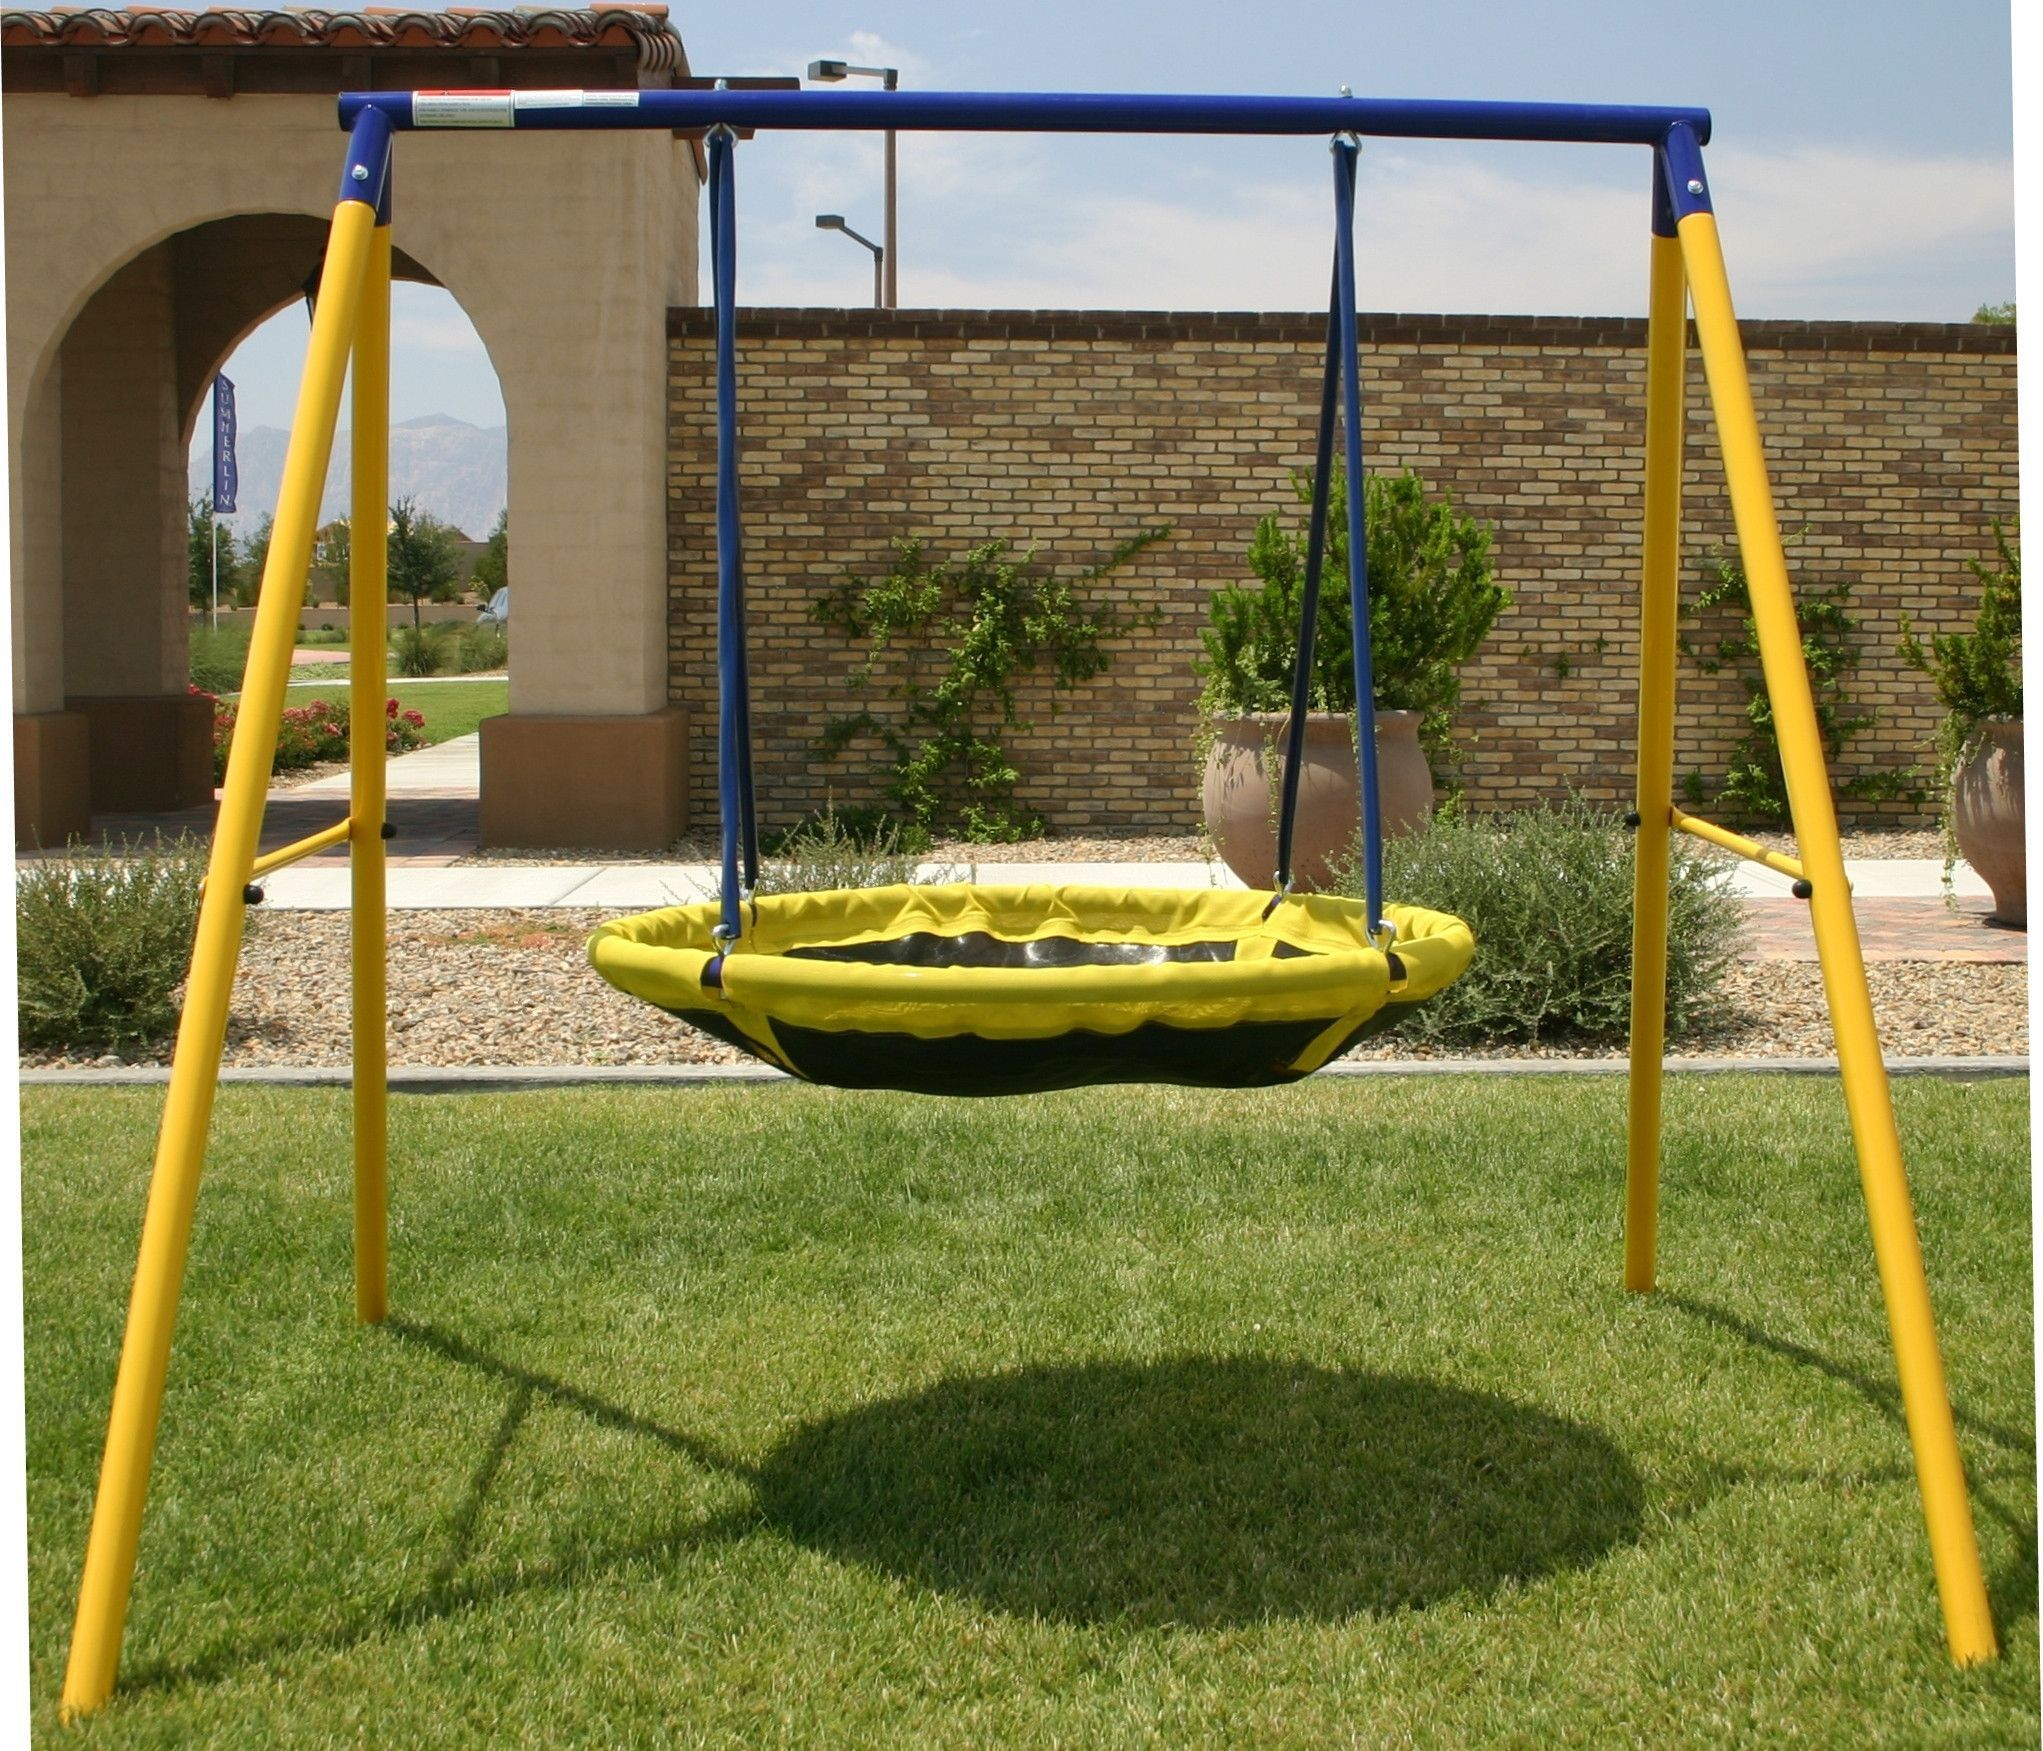 1 Or 2 Person Ufo Flying Saucer Swing Set For Kids Toddlers The